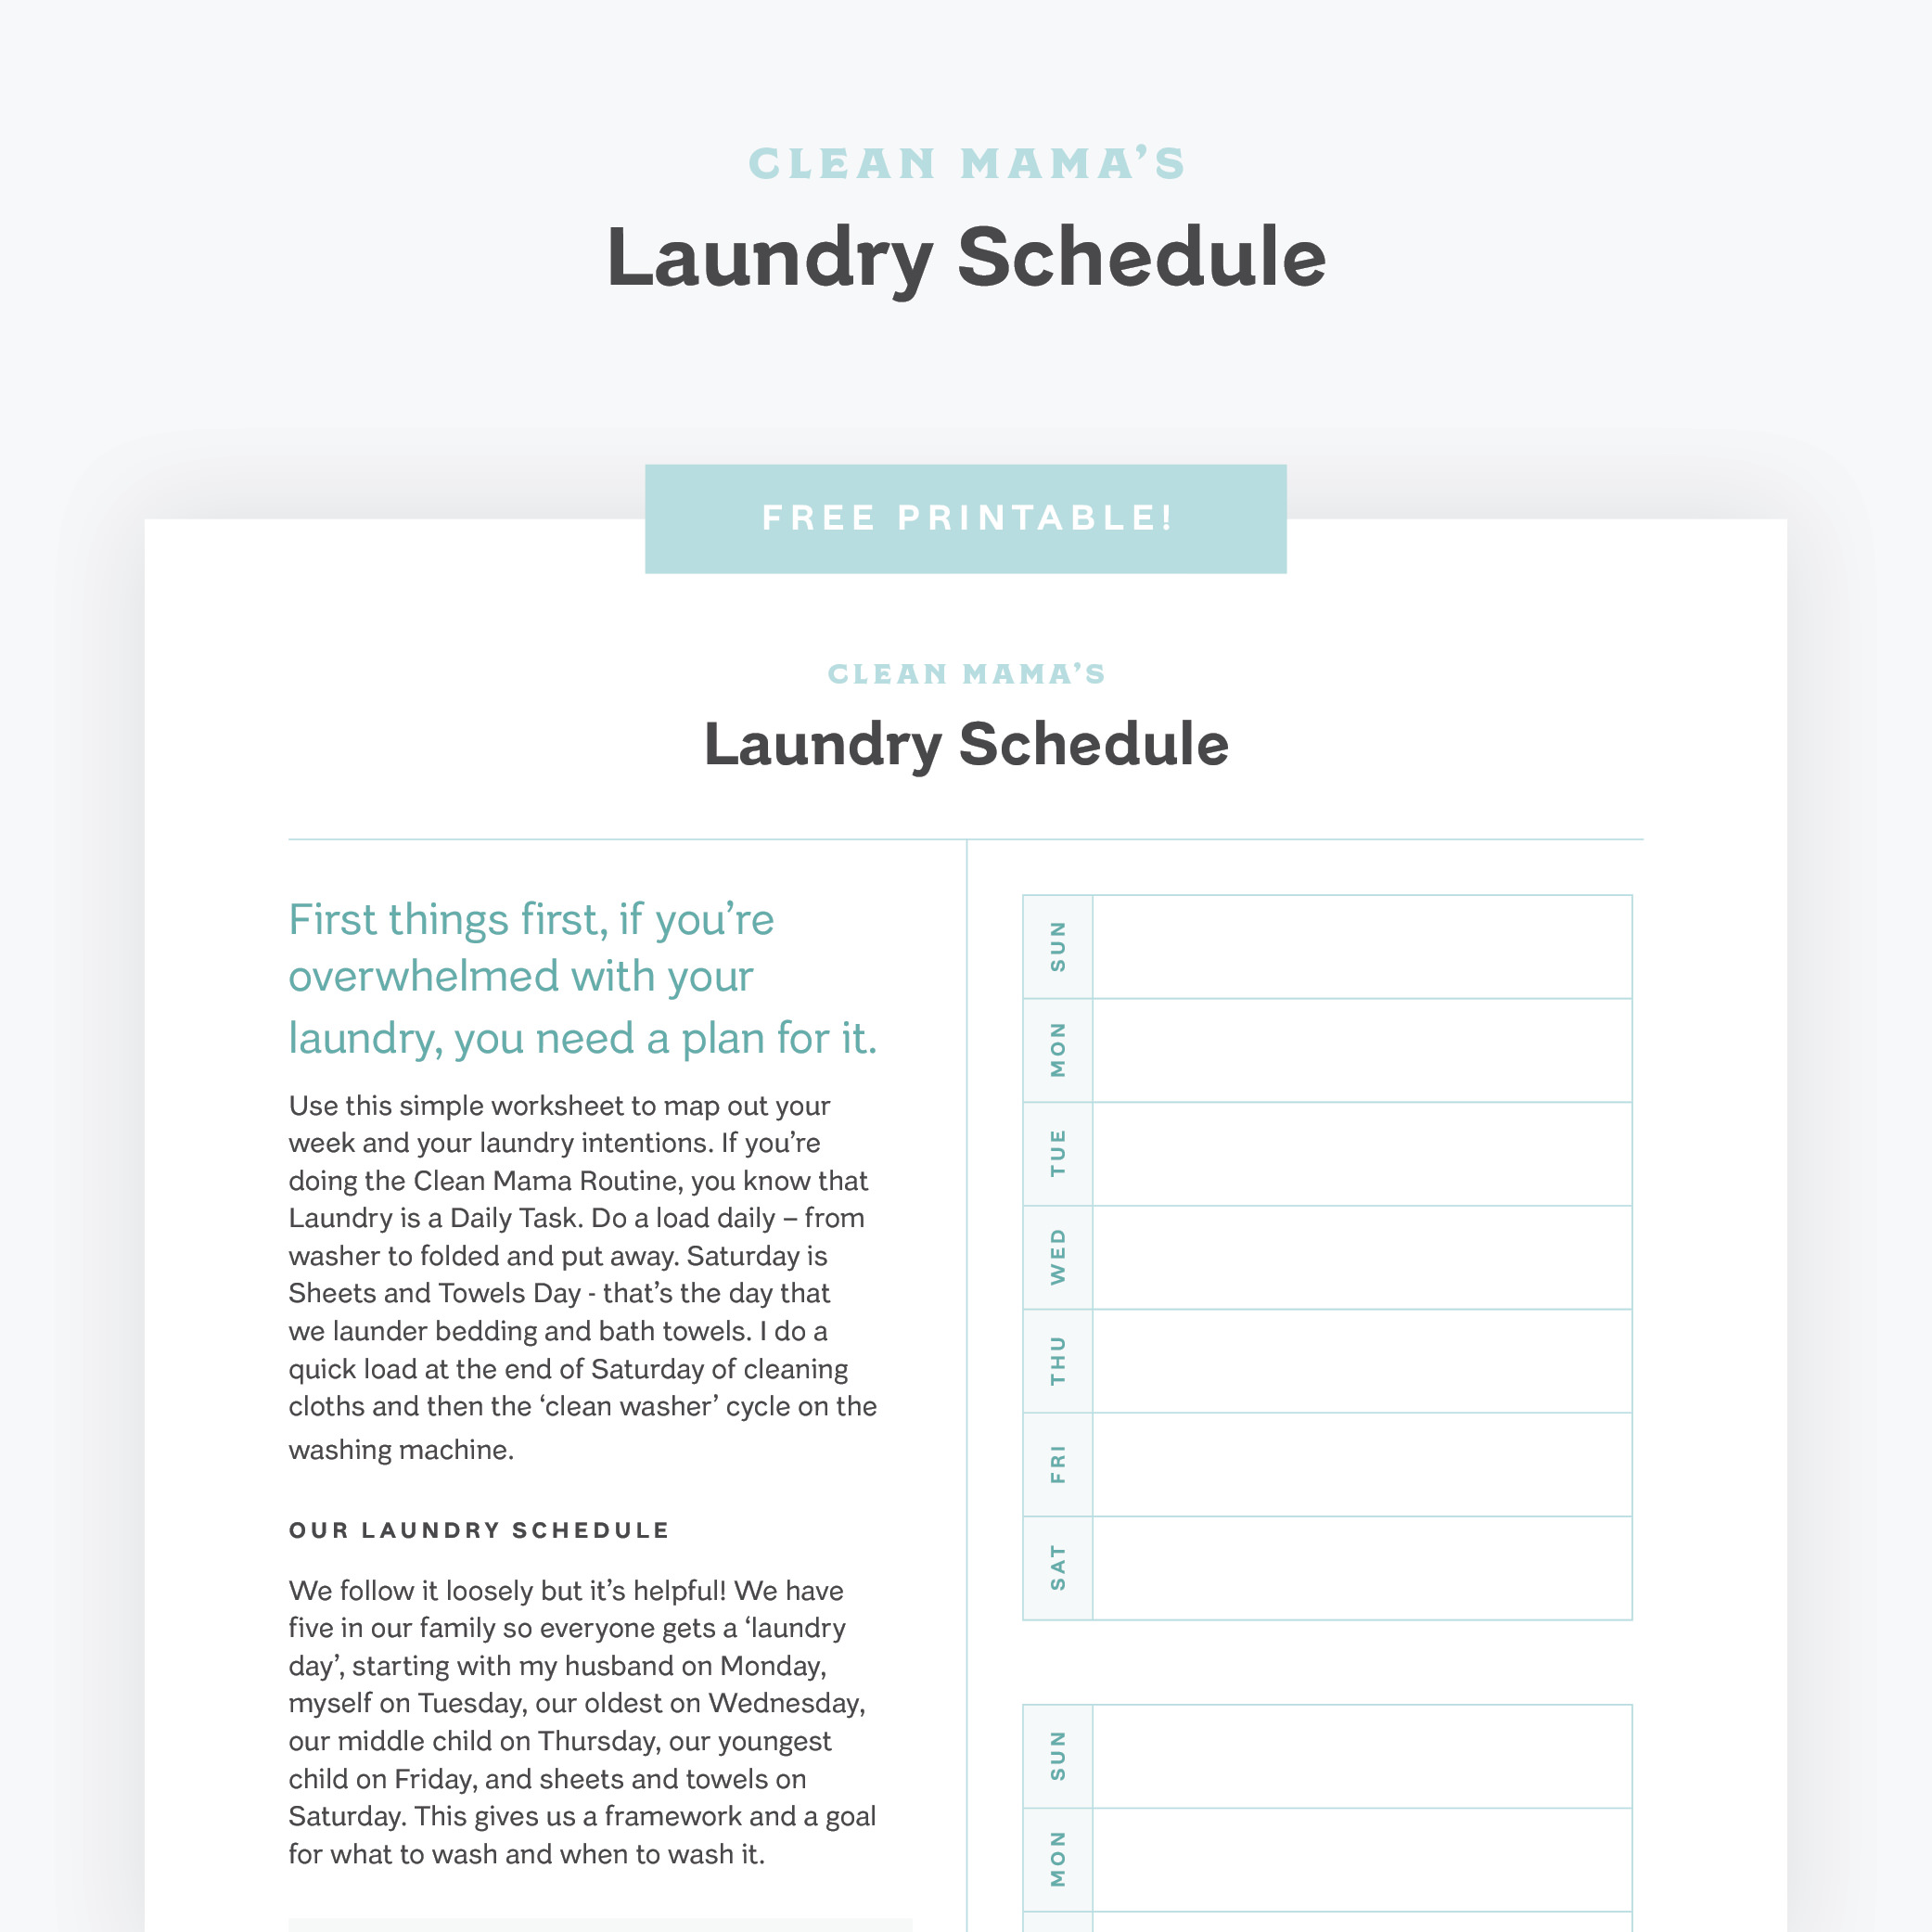 Laundry Schedule by Clean Mama